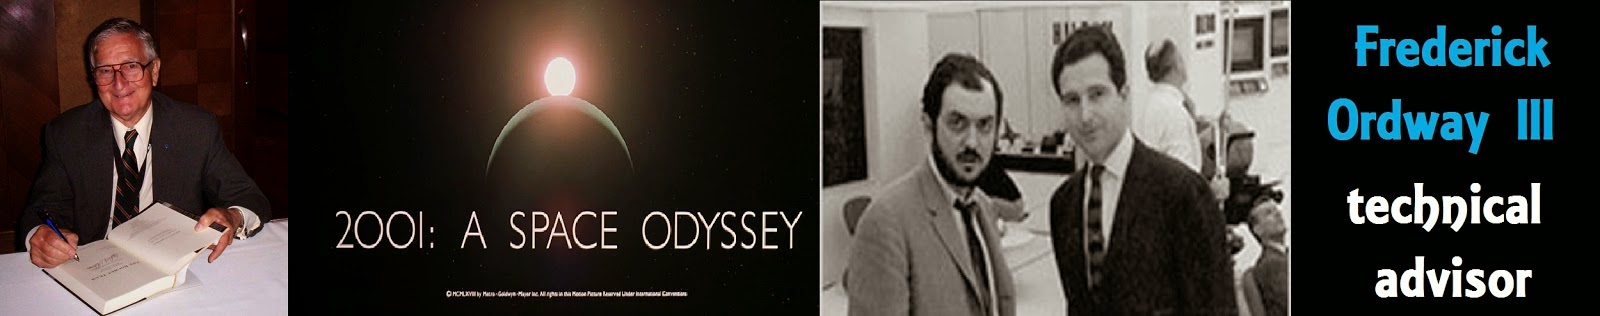 frederick ordway 2001 a space odyssey